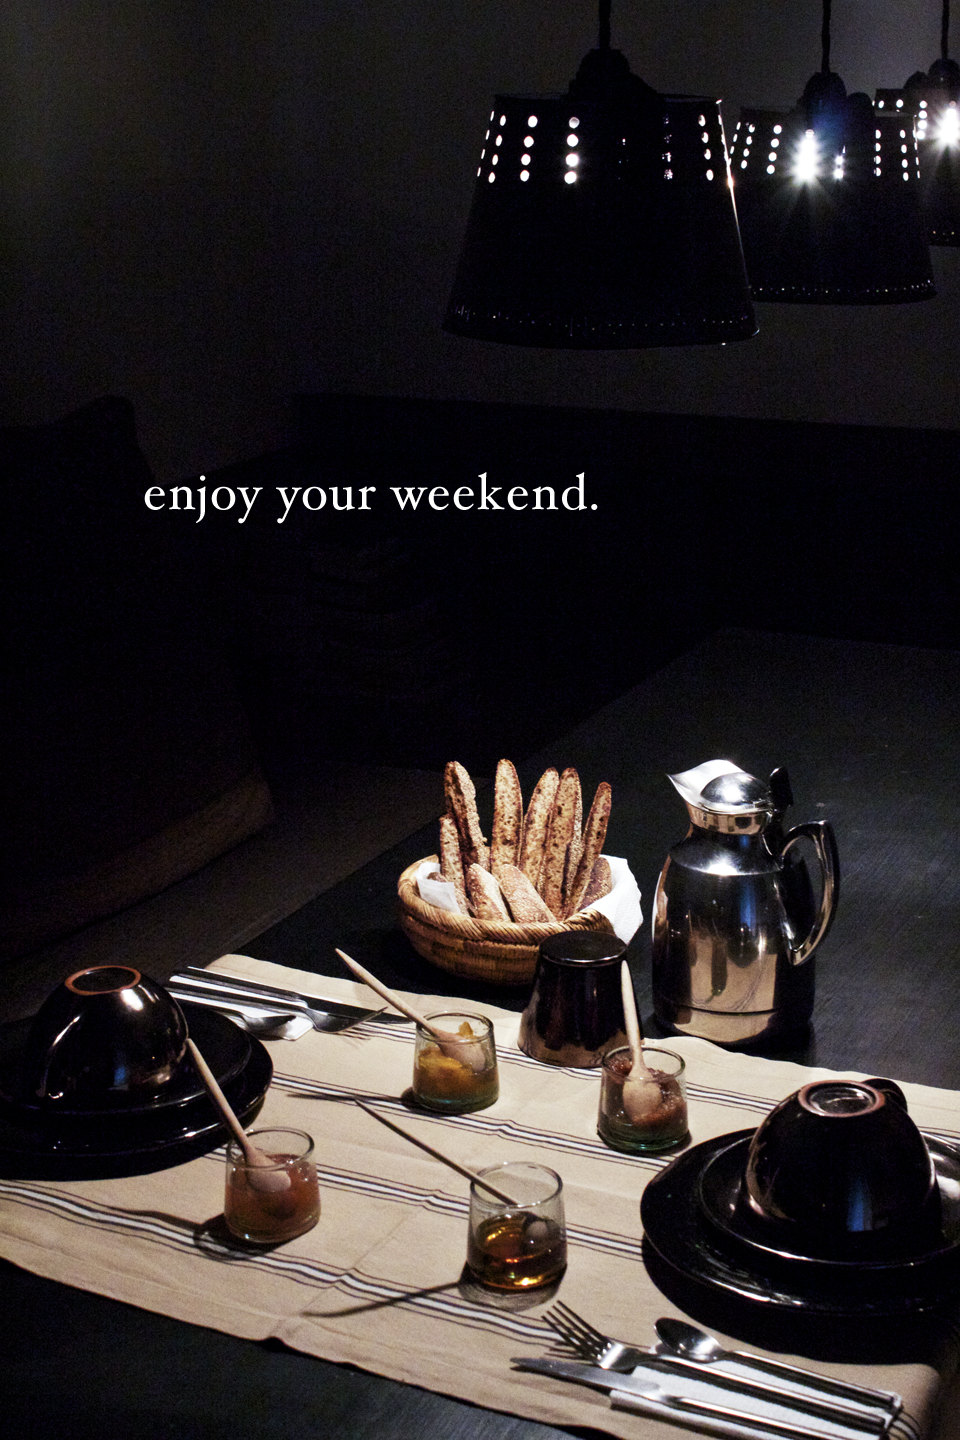 enjoy your weekend.